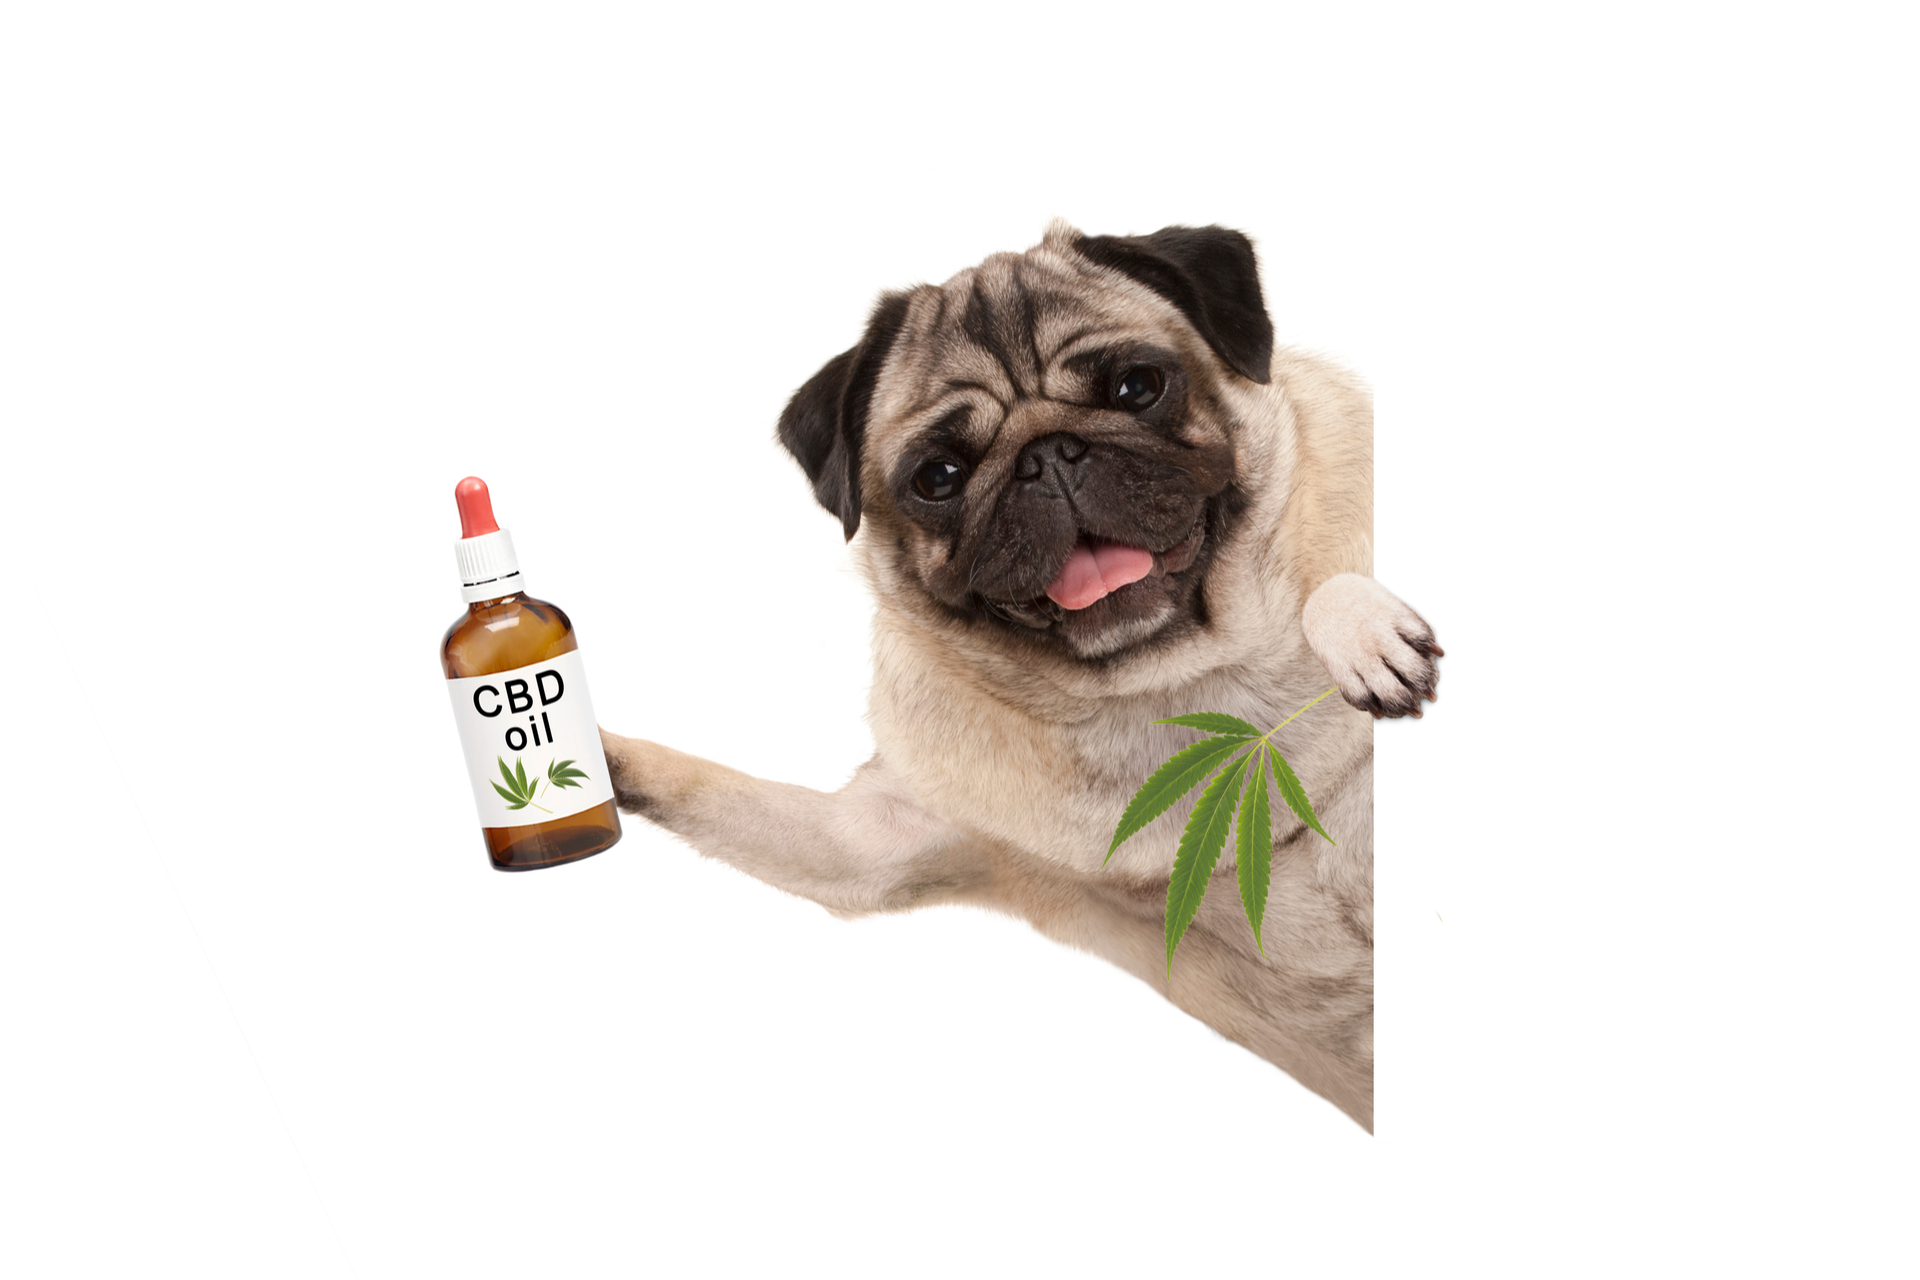 cute smiling pug puppy dog holding up bottle of CBD oil